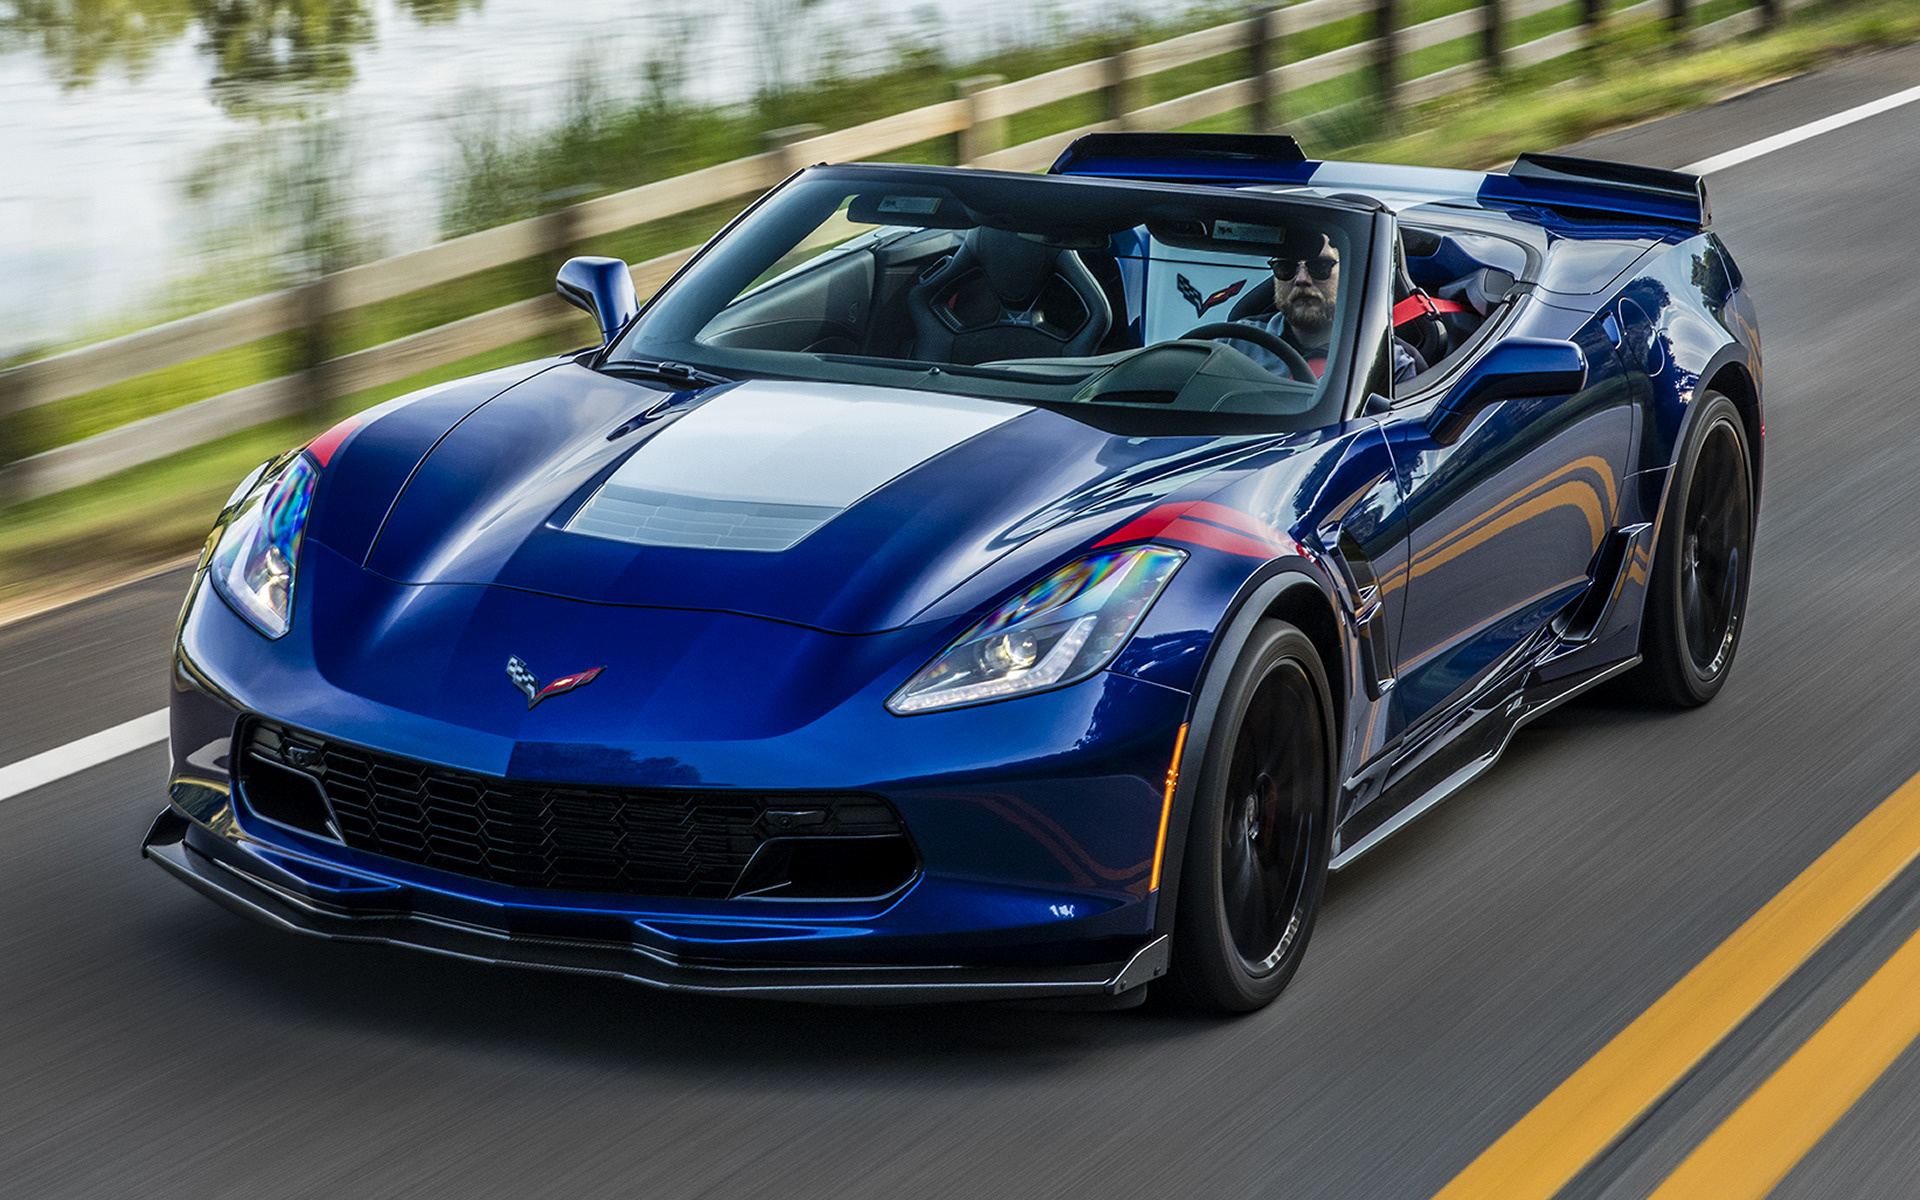 2017 Chevrolet Corvette Grand Sport Convertible - Wallpapers and HD Images | Car Pixel